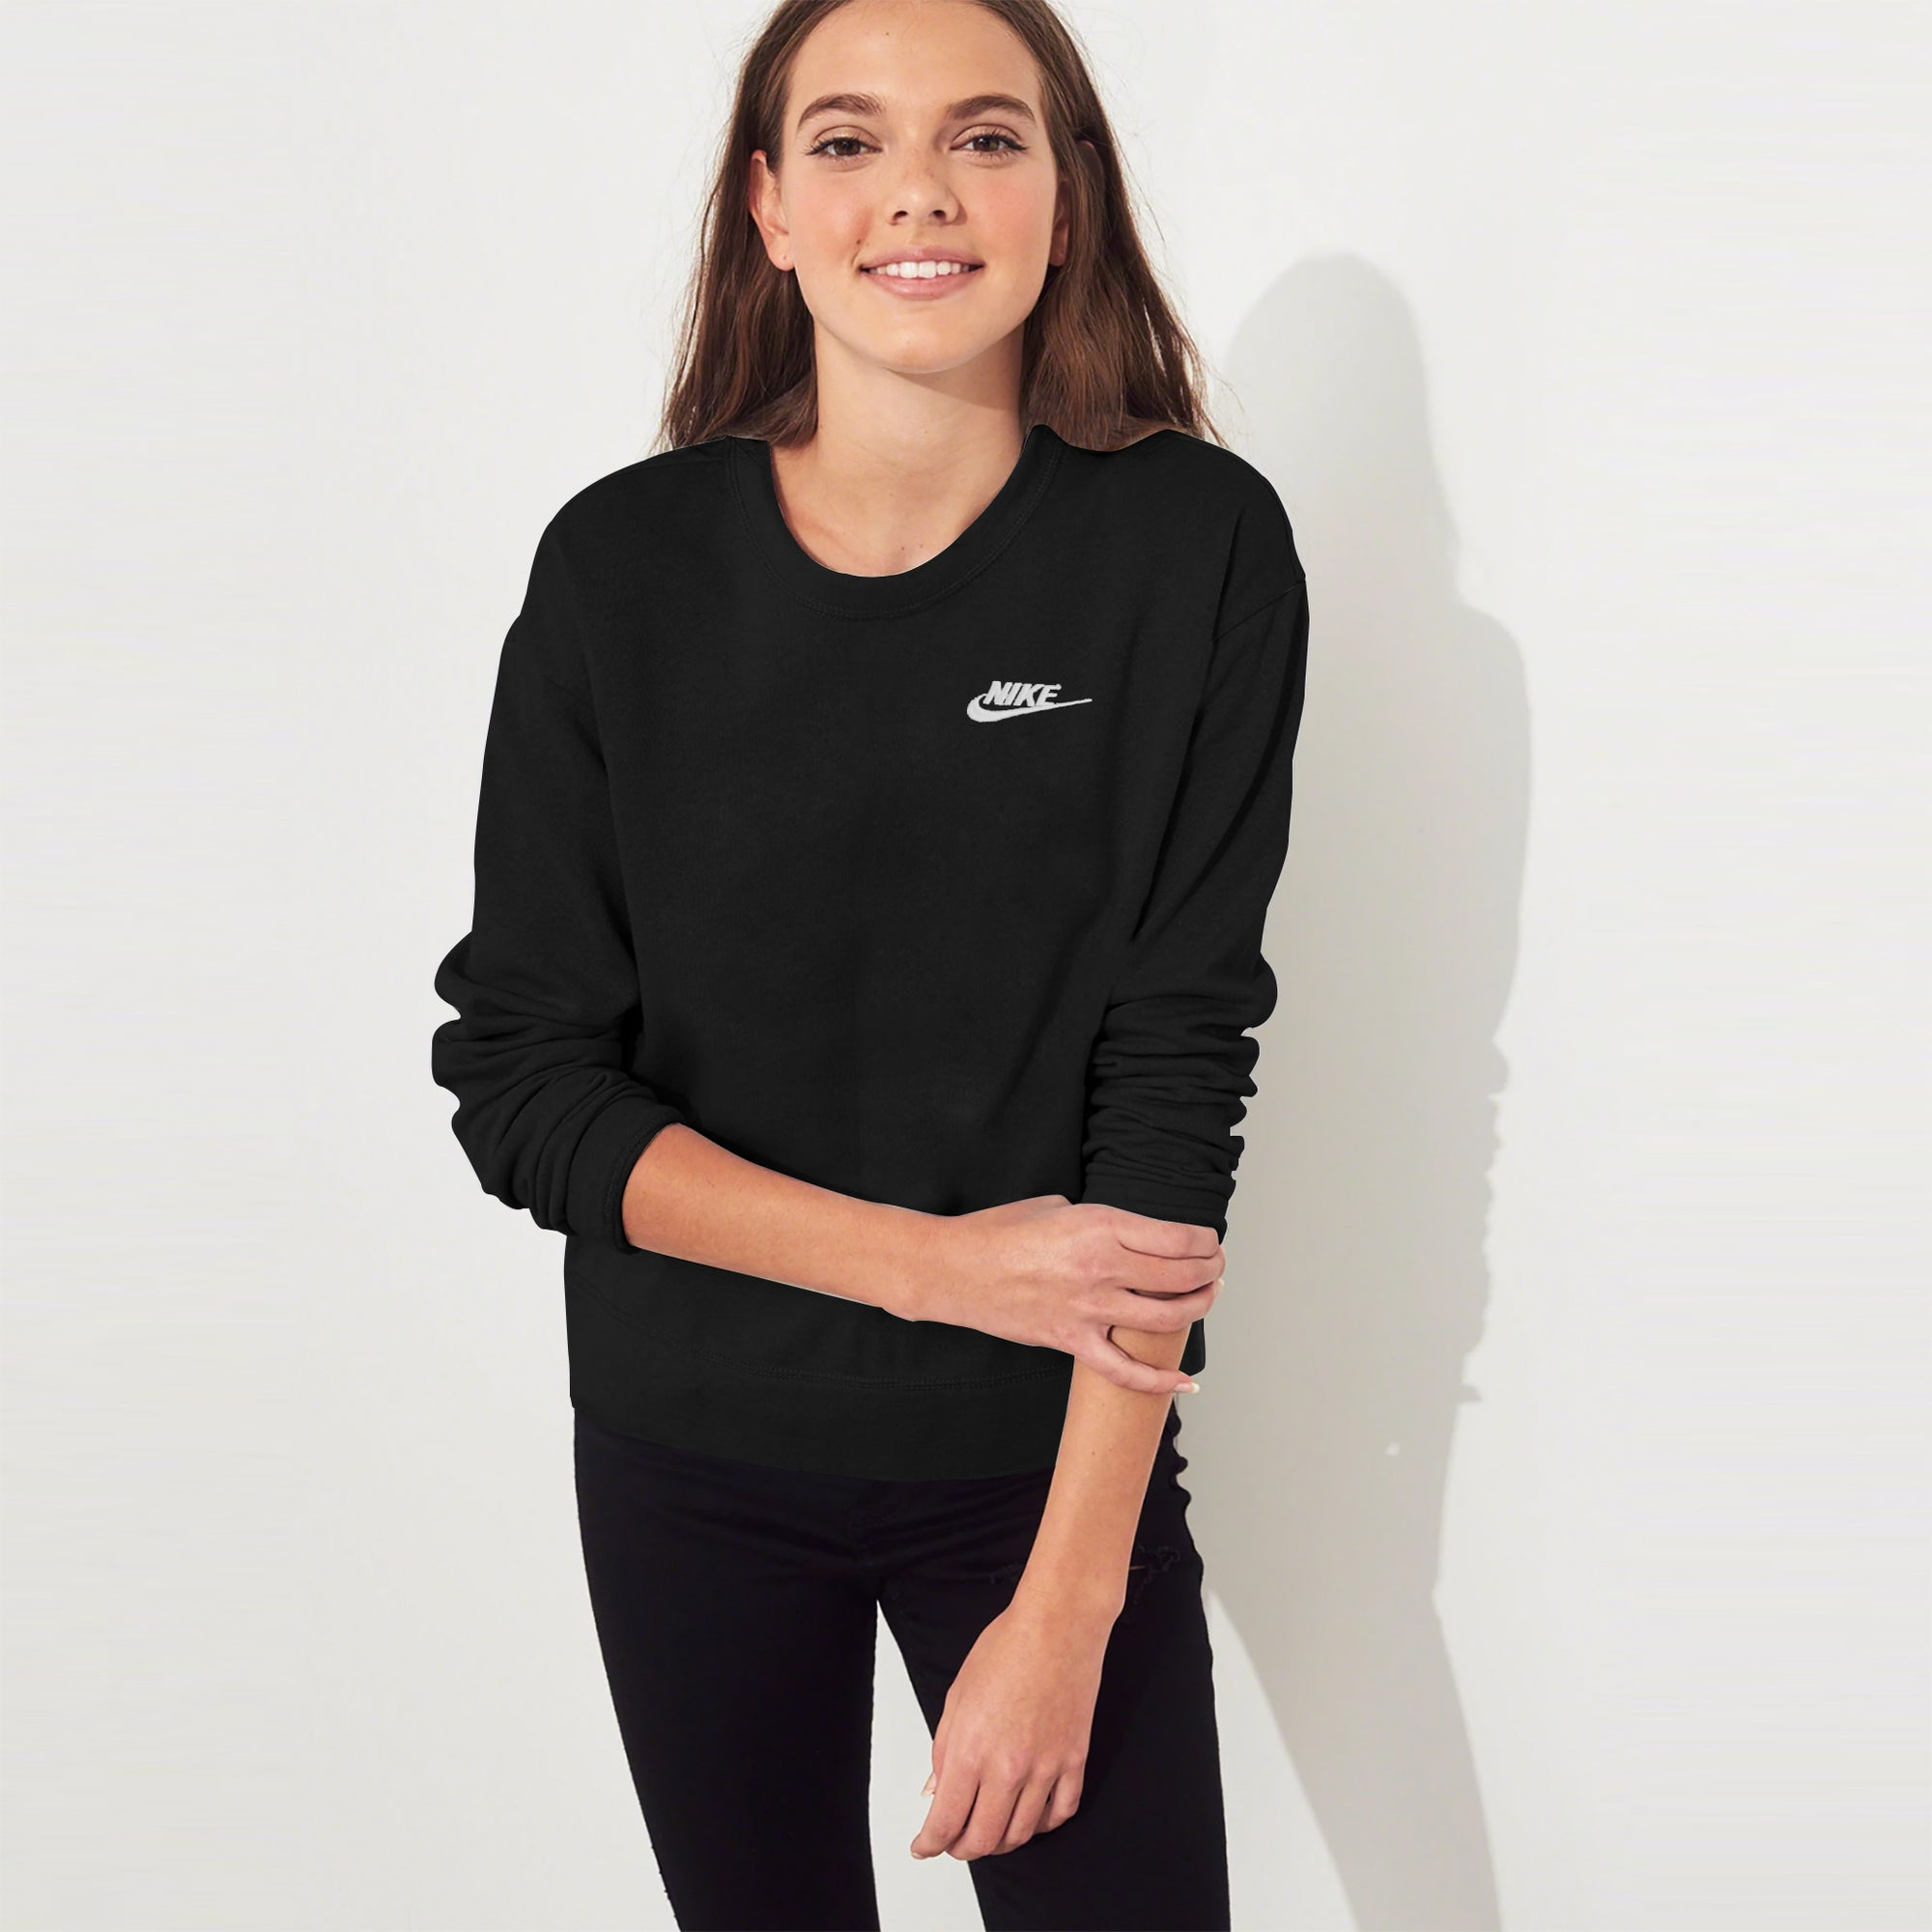 NK Terry Fleece Crew Neck Sweatshirt For Ladies-Black-SP1305